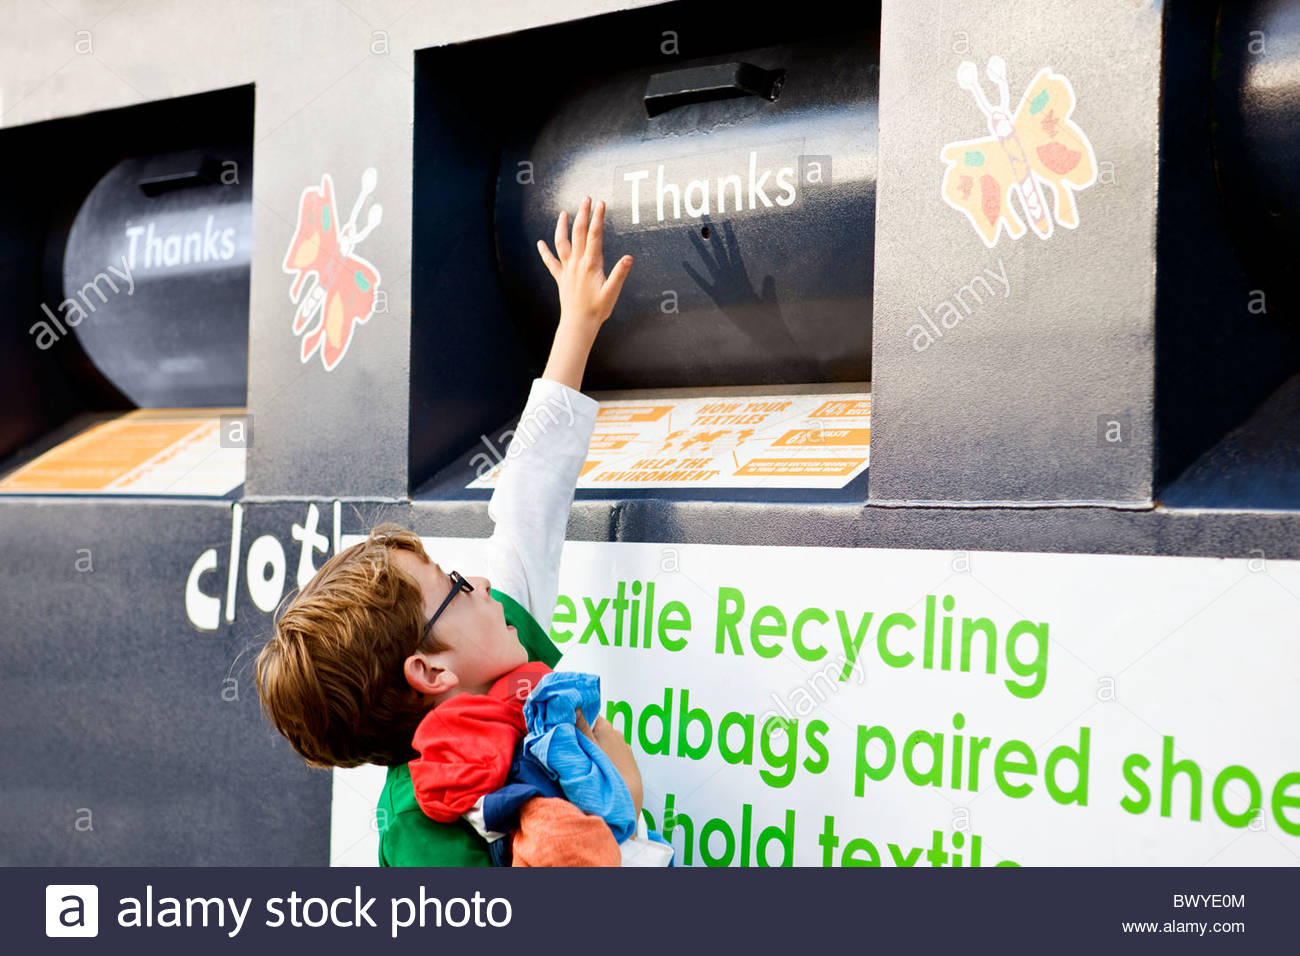 A young boy recycling clothes - Stock Image